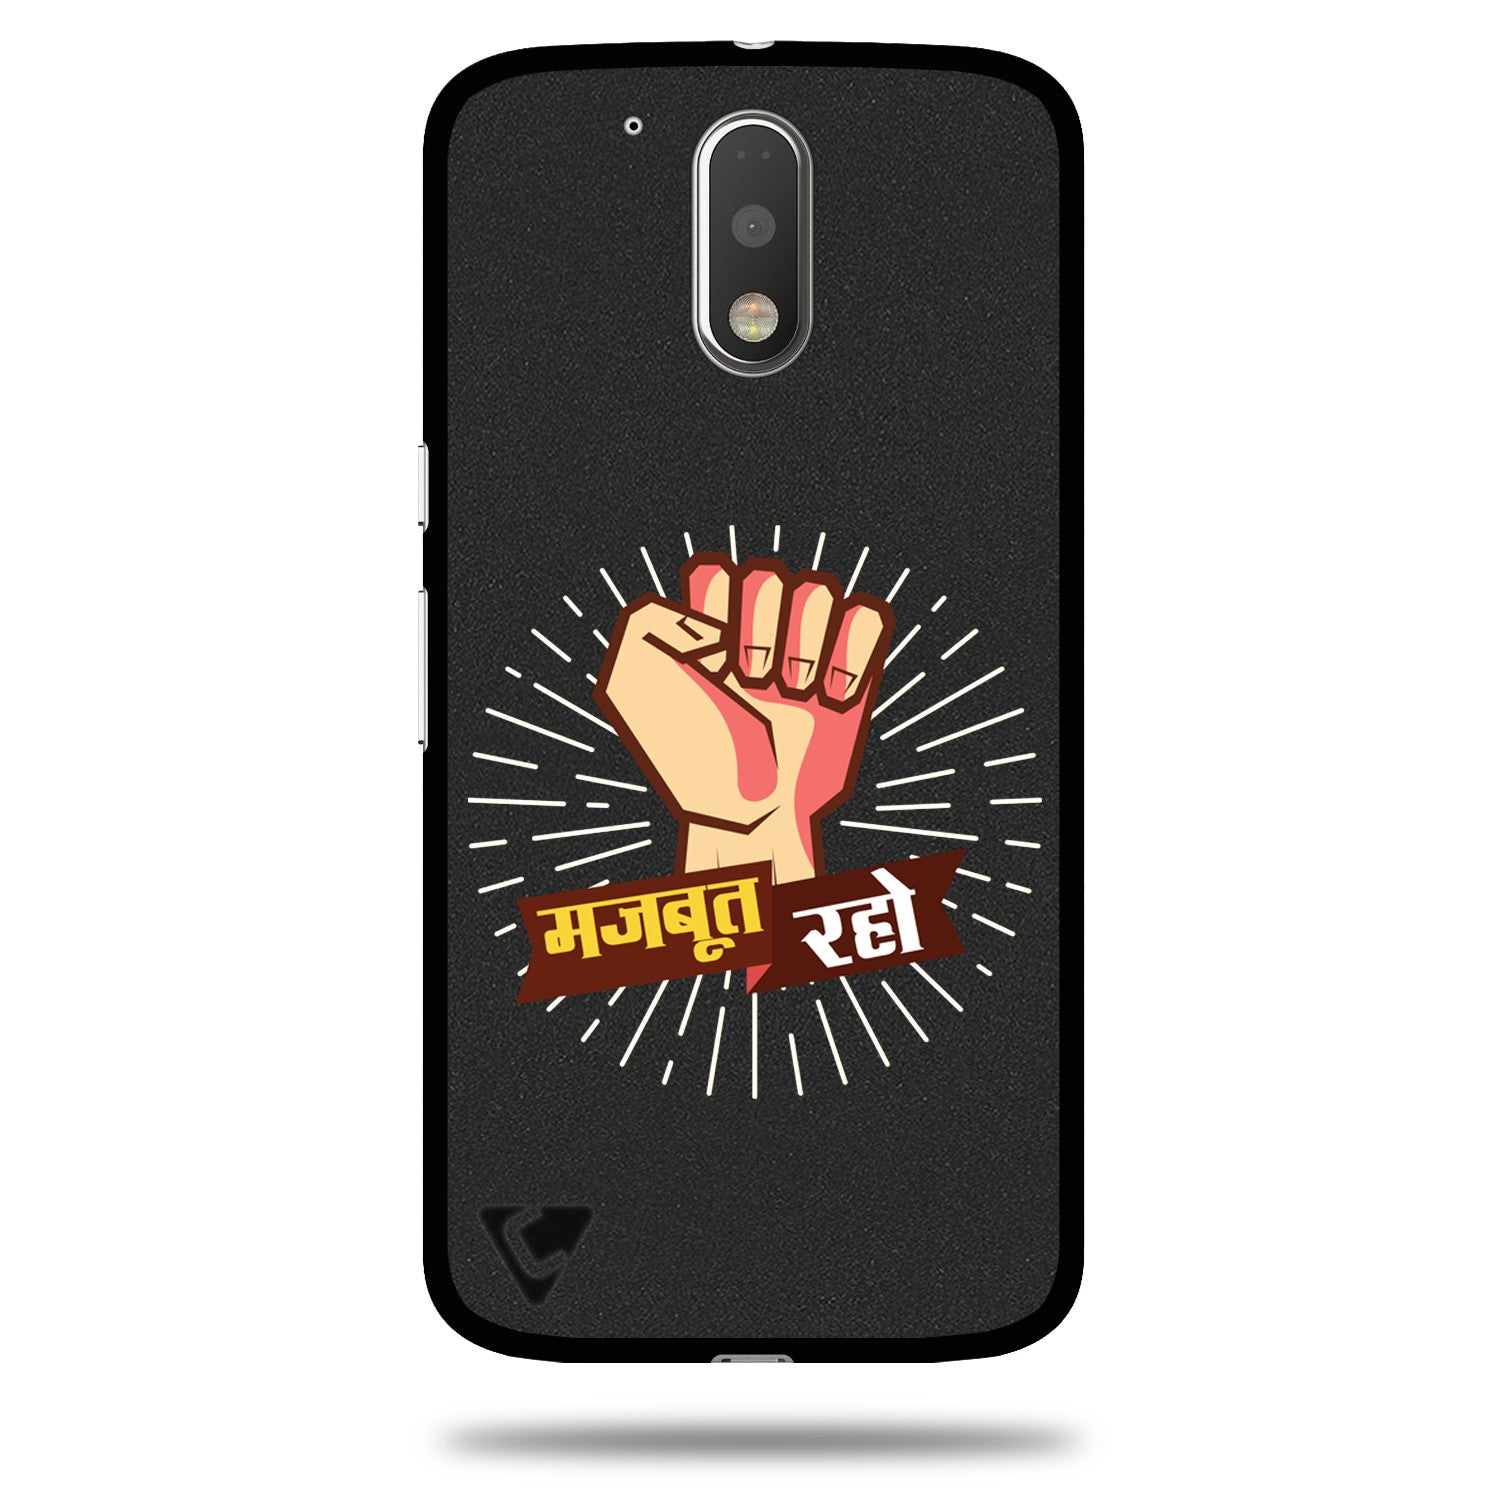 Flexible & Low Profile Printed TPU Back Cover for Moto G4 Plus & Moto G4 – Mazboot Raho / Stay Strong: Motivational Quote